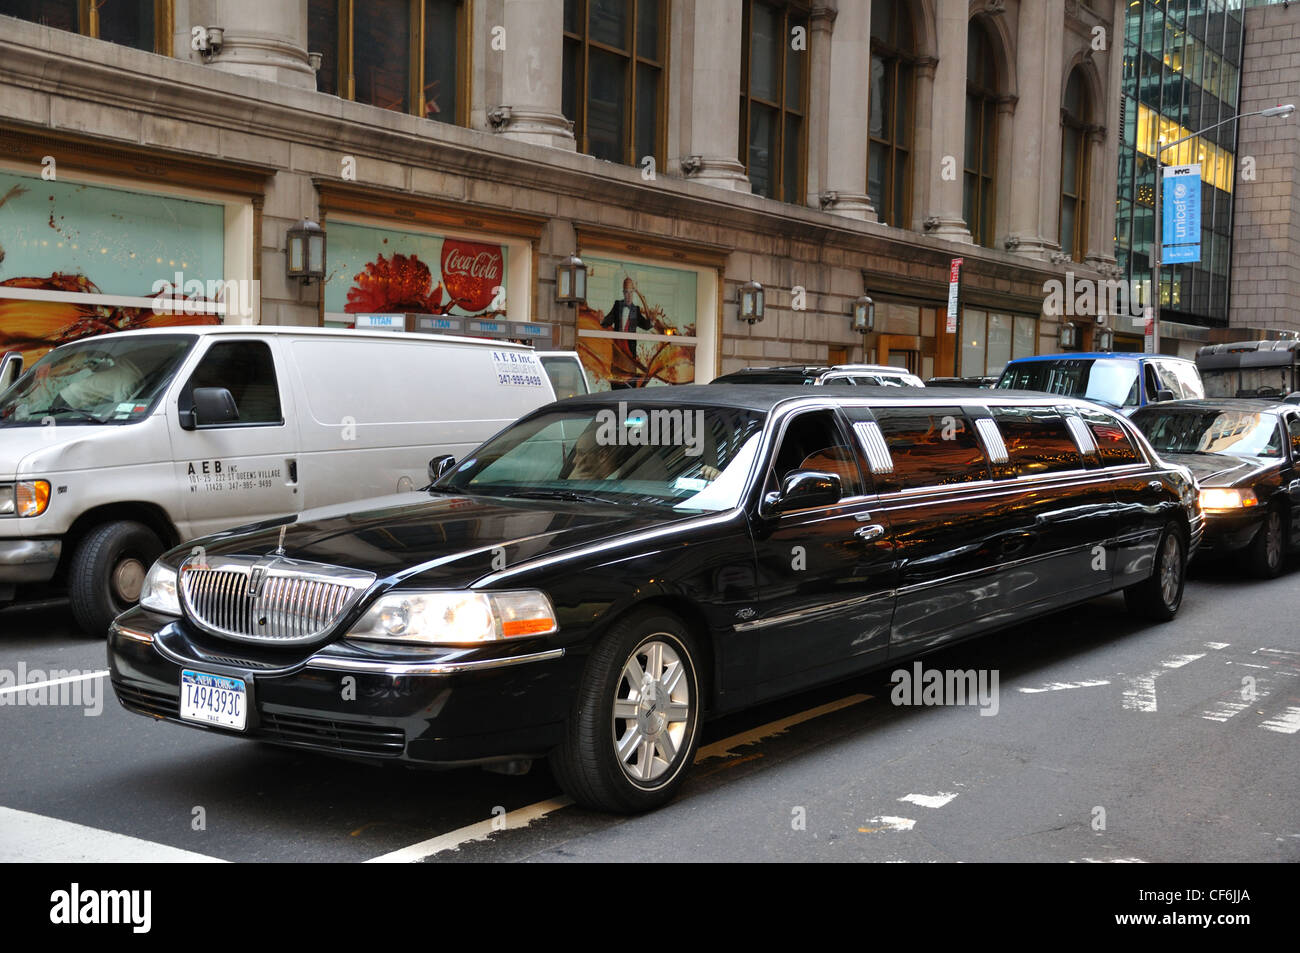 new york city usa stretch limousine stockfoto bild. Black Bedroom Furniture Sets. Home Design Ideas